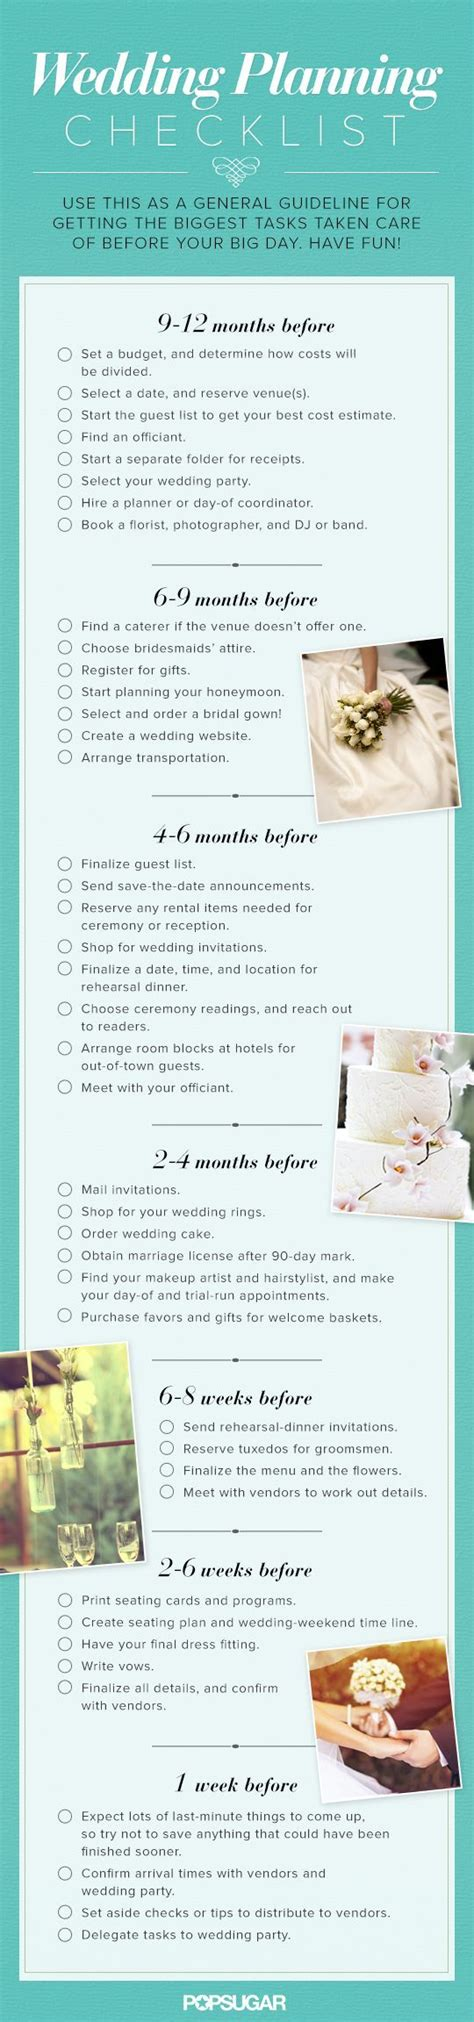 wedding plans top 5 wedding planning checklists to keep you on track